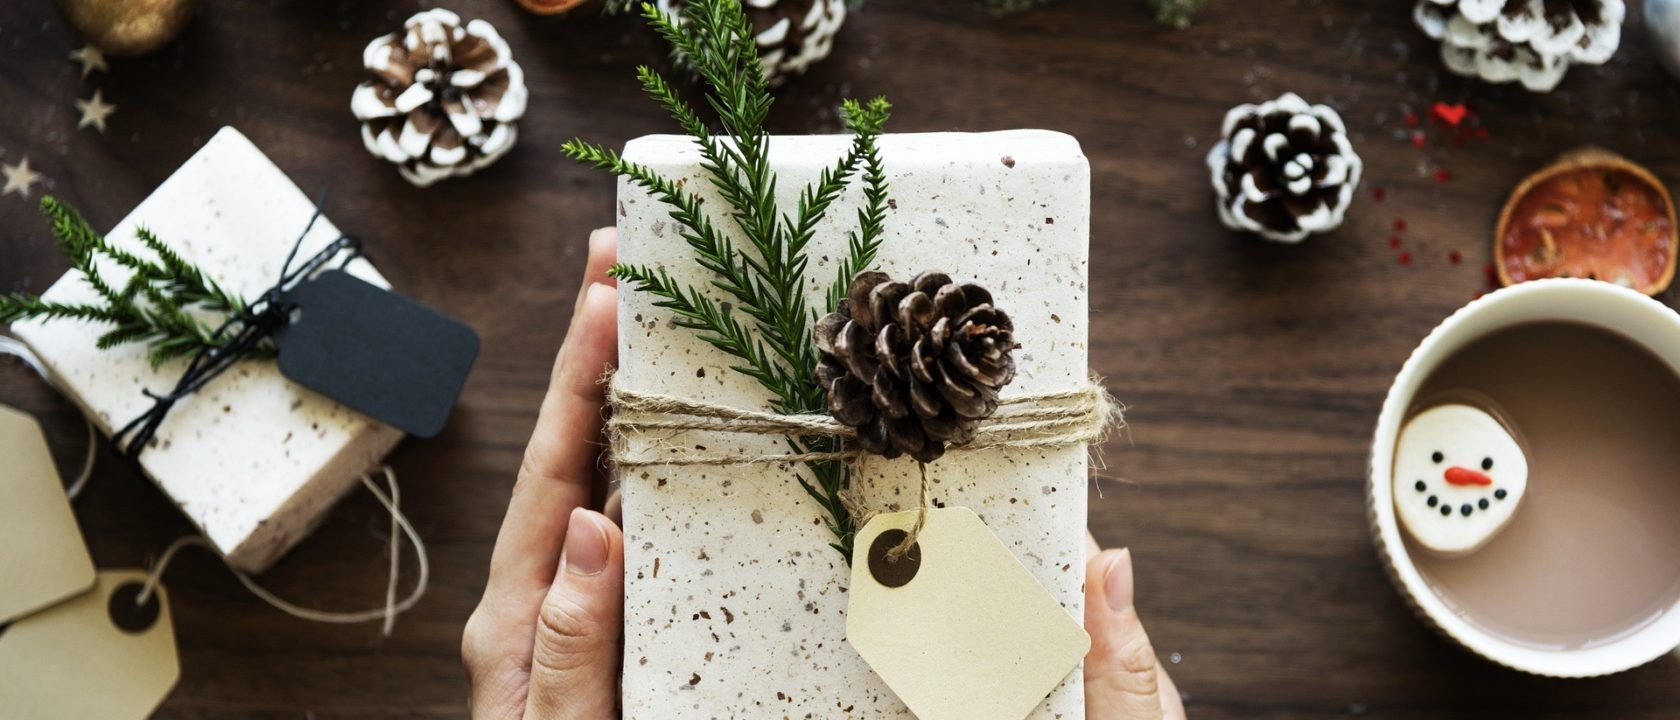 Tips for a Green Holiday Season